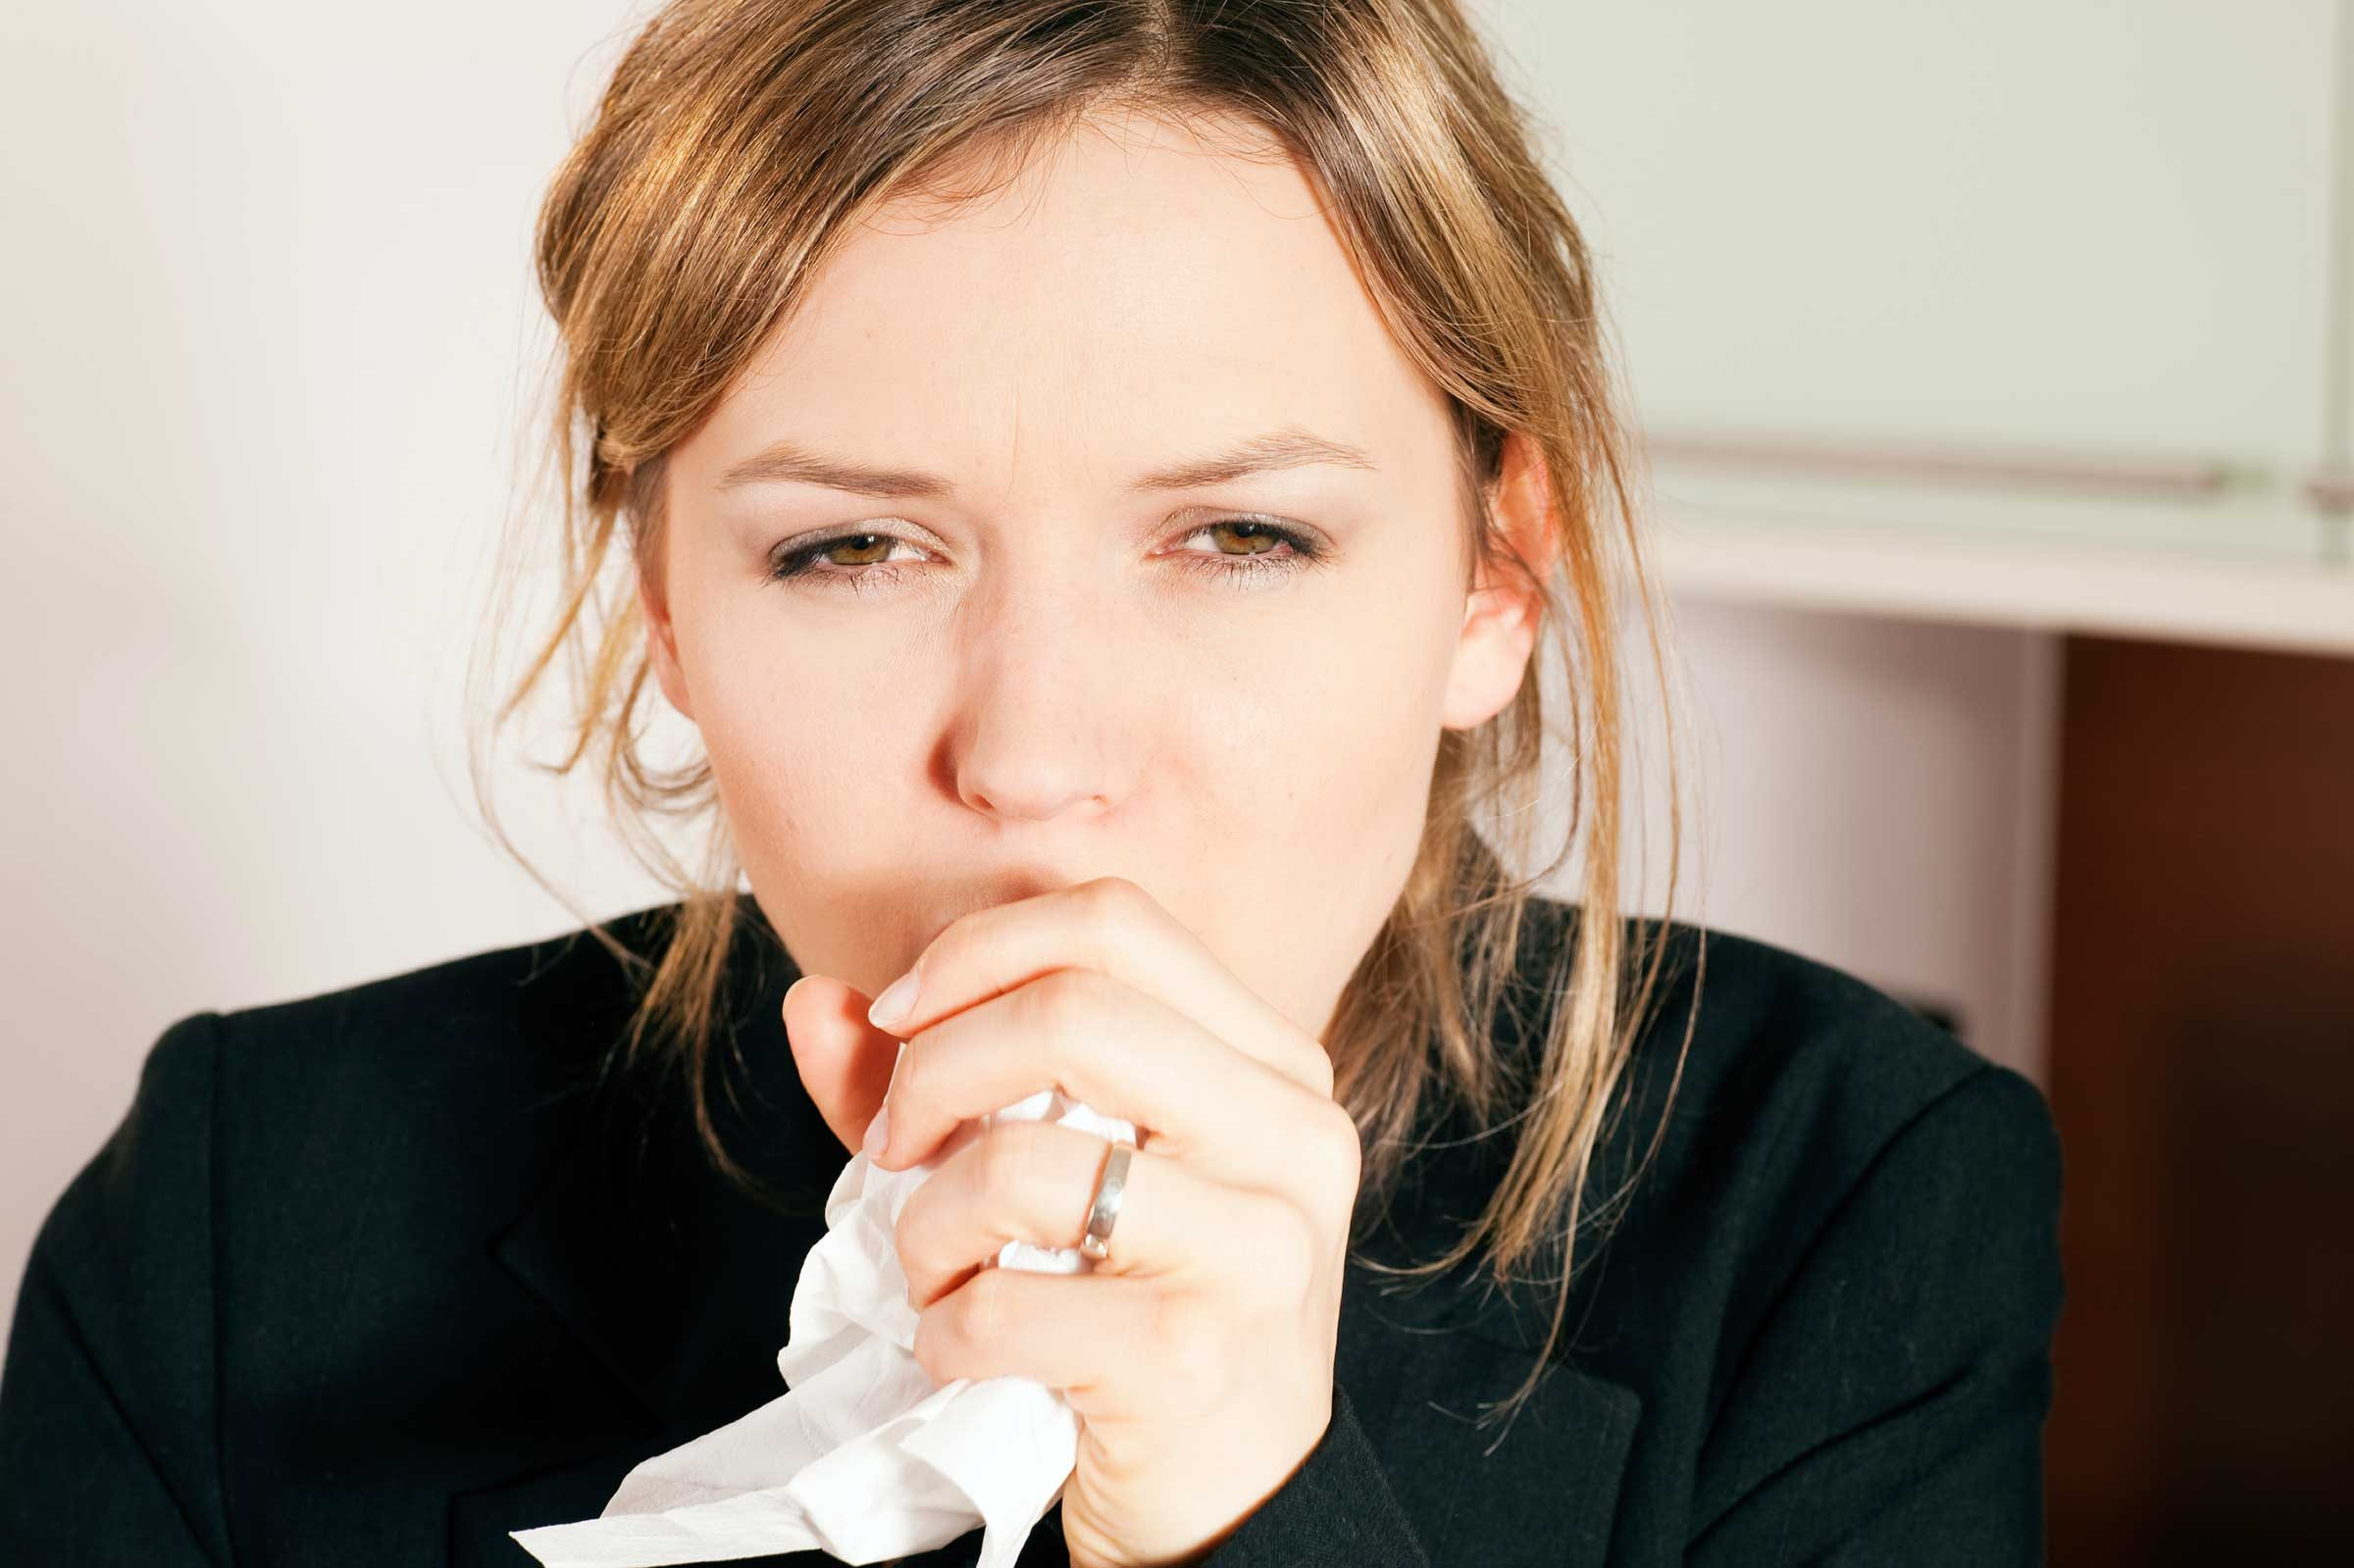 You might suffer from odd coughing, wheezing, or be short of breath.